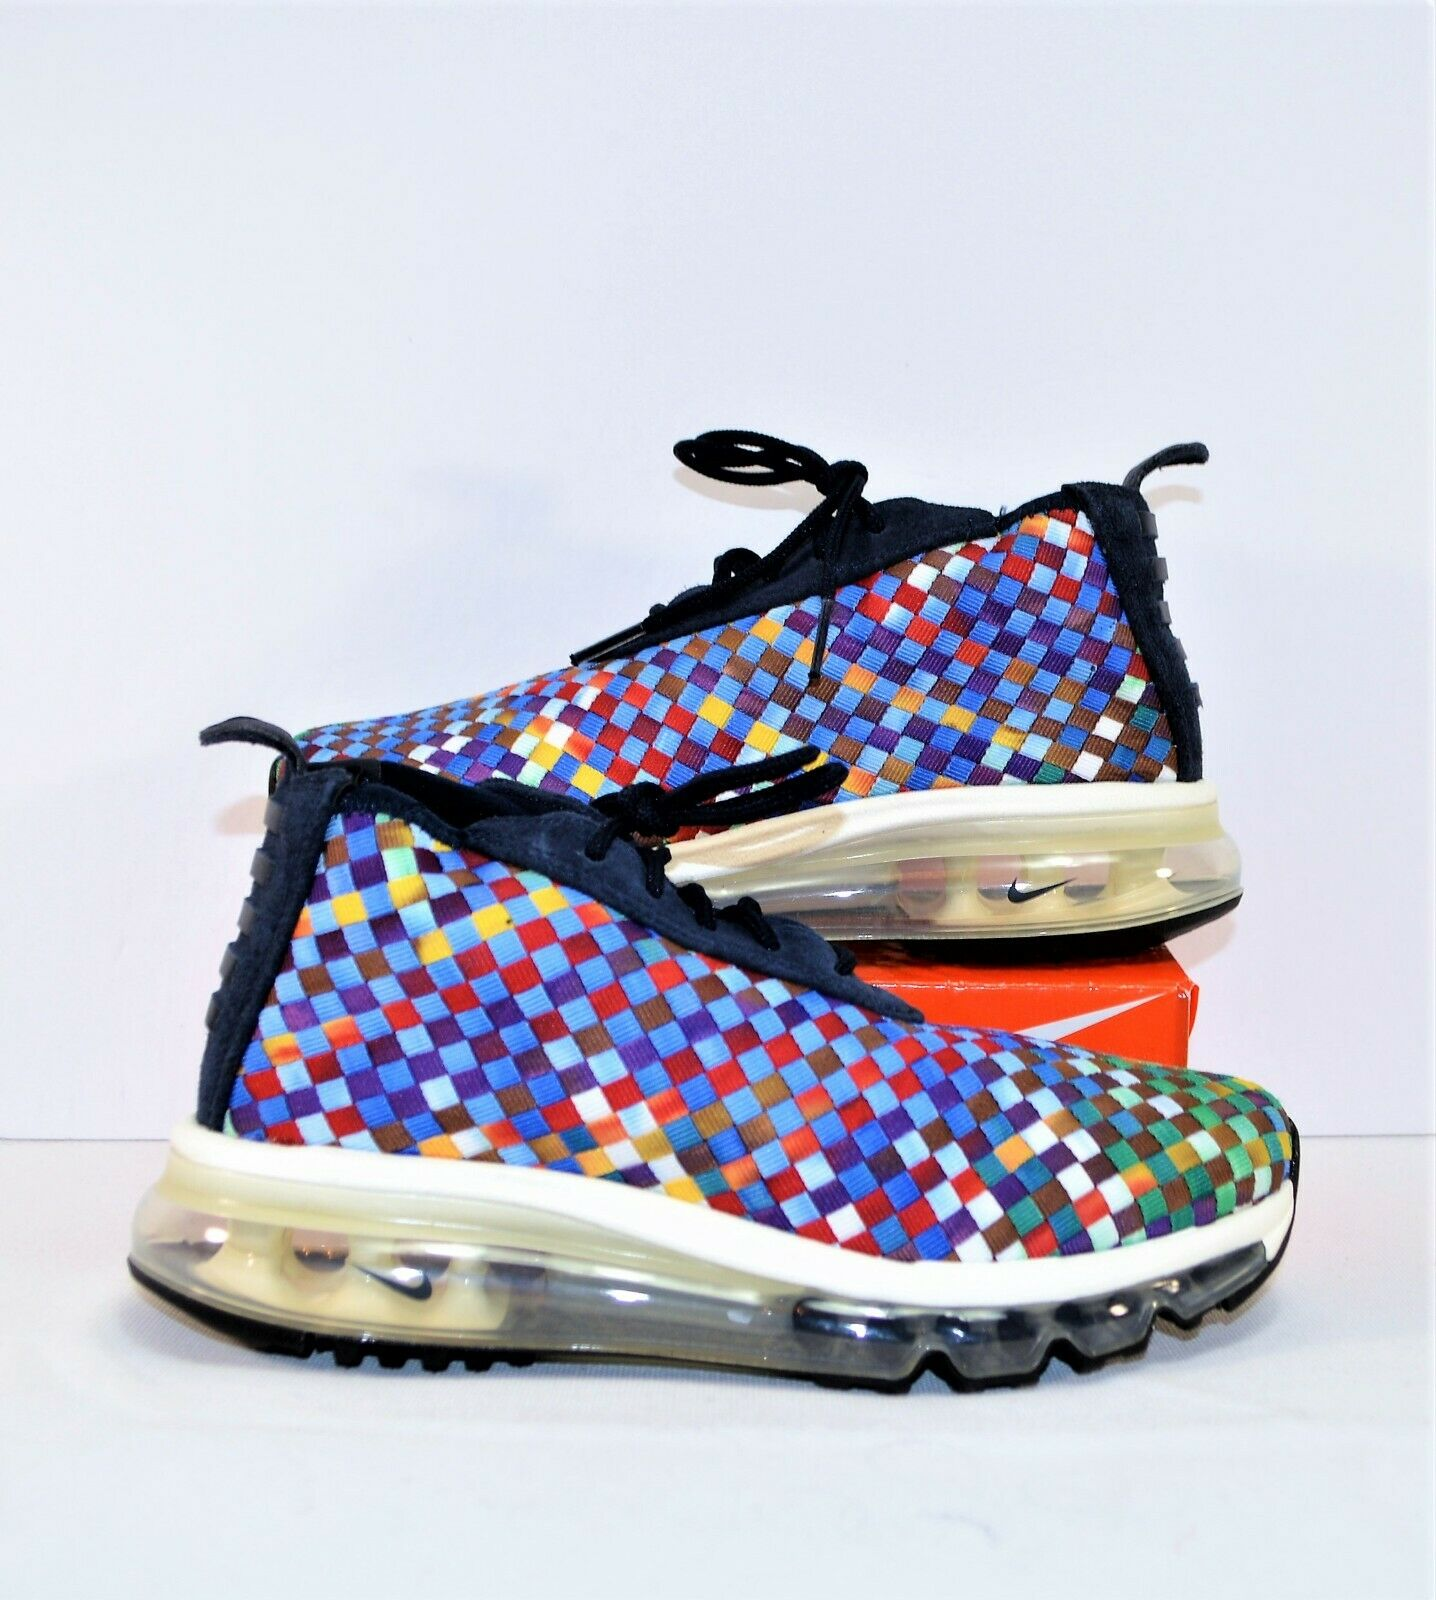 Nike Air Max Woven Boot Multicolor Obsidian Running shoes Sz 4.5 NEW AH8139 400